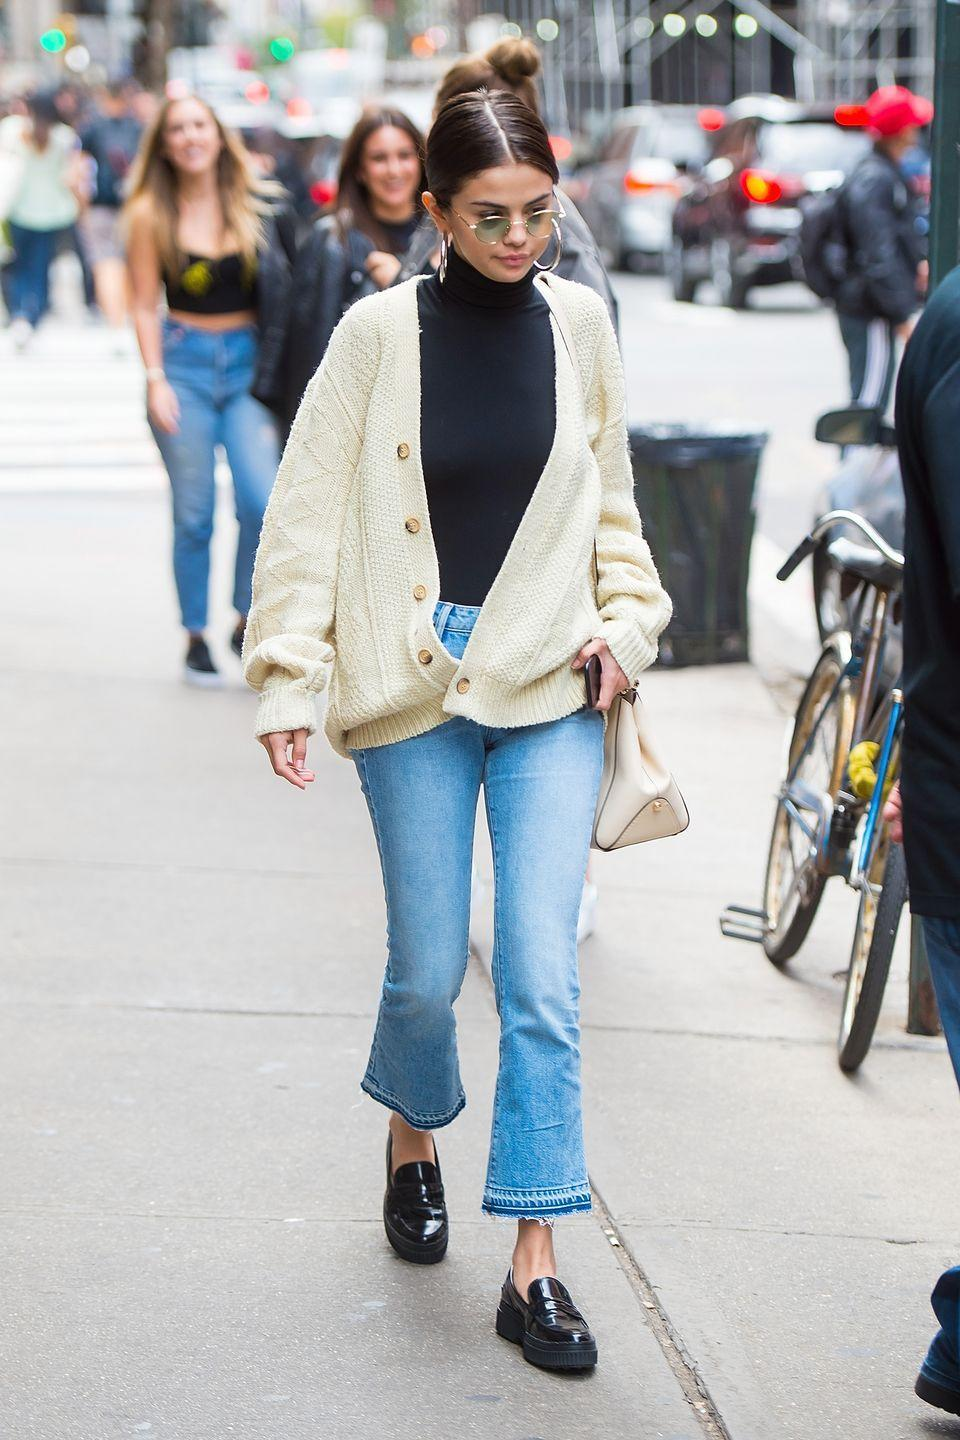 """<p>My last-minute outfit secret: throw on all your favorite pieces and go. Pair up your comfiest turtleneck with your favorite jeans and top with the oversized cardigan you live in on the weekends. Done! </p><p><strong>What you'll need: </strong><em>Openwork Knit Cardigan, $80, Mango</em></p><p><a class=""""link rapid-noclick-resp"""" href=""""https://go.redirectingat.com?id=74968X1596630&url=https%3A%2F%2Fshop.mango.com%2Fus%2Fwomen%2Fcardigans-and-sweaters-cardigans%2Fopenwork-knit-cardigan_77025912.html&sref=https%3A%2F%2Fwww.seventeen.com%2Ffashion%2Fstyle-advice%2Fg25727522%2Fcasual-outfits%2F"""" rel=""""nofollow noopener"""" target=""""_blank"""" data-ylk=""""slk:SHOP HERE"""">SHOP HERE</a></p>"""